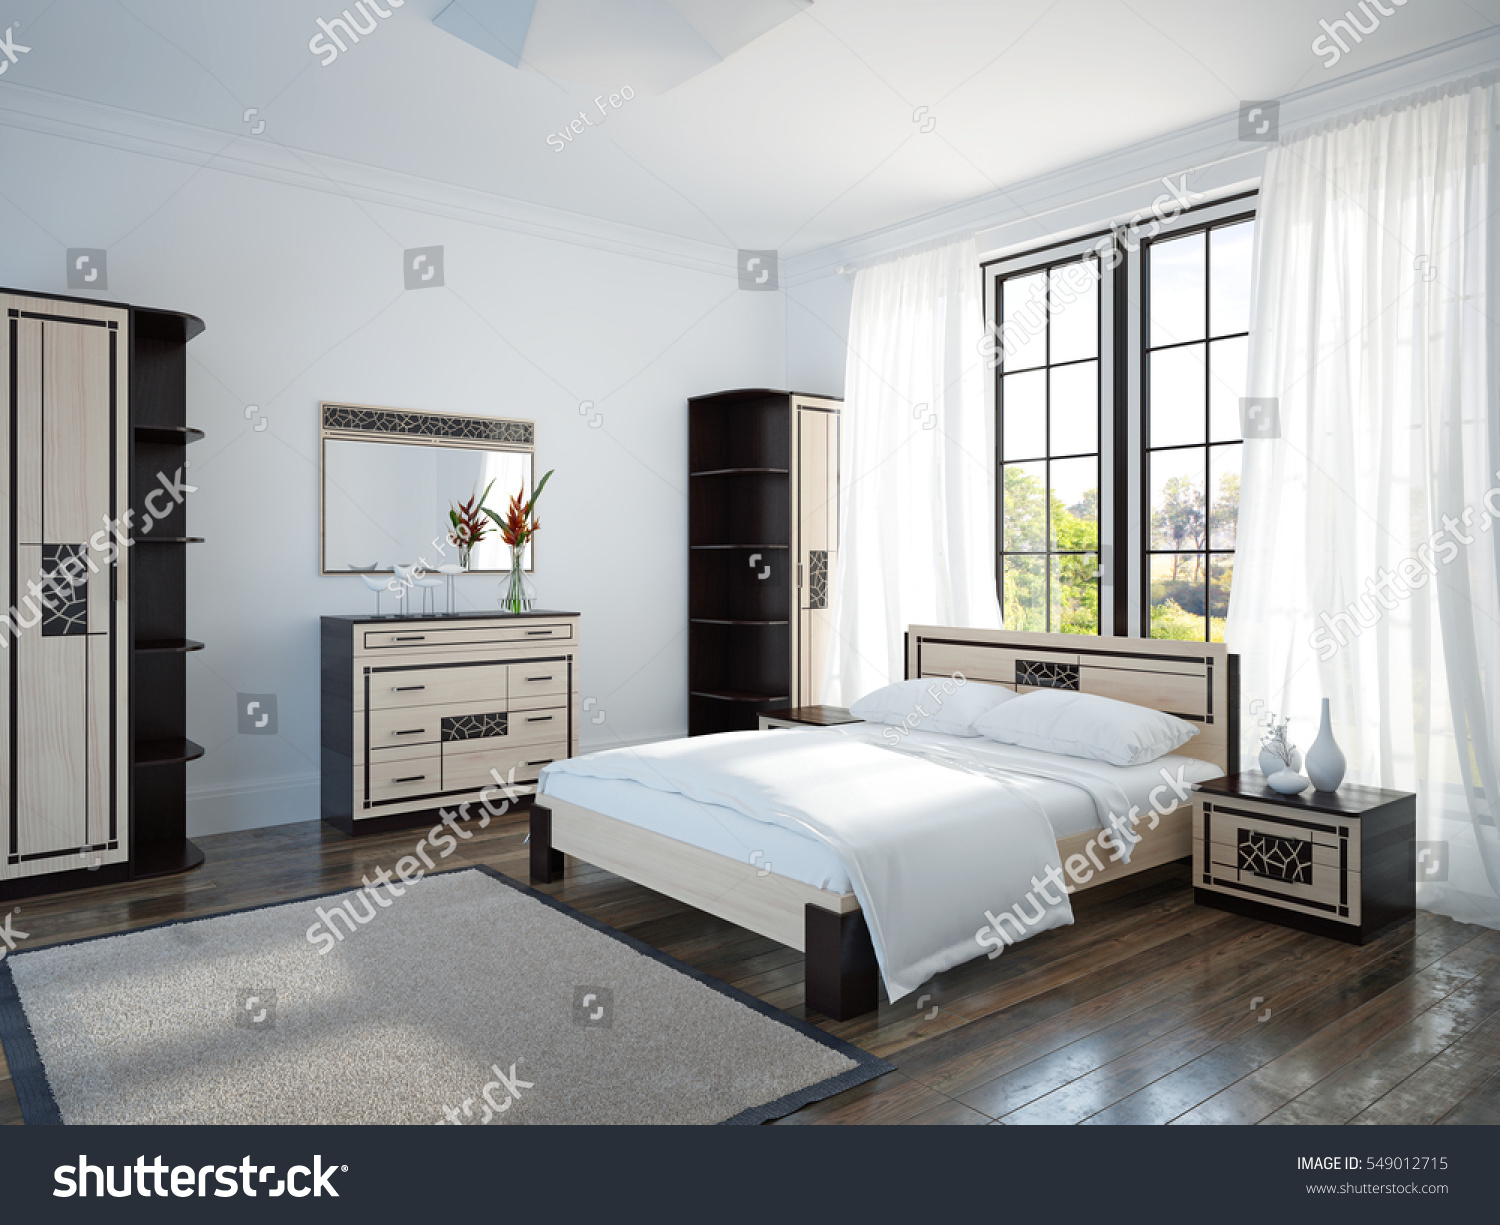 Spacious and bright bedroom with large window and wooden furniture  3d  illustration. Spacious Bright Bedroom Large Window Wooden Stock Illustration